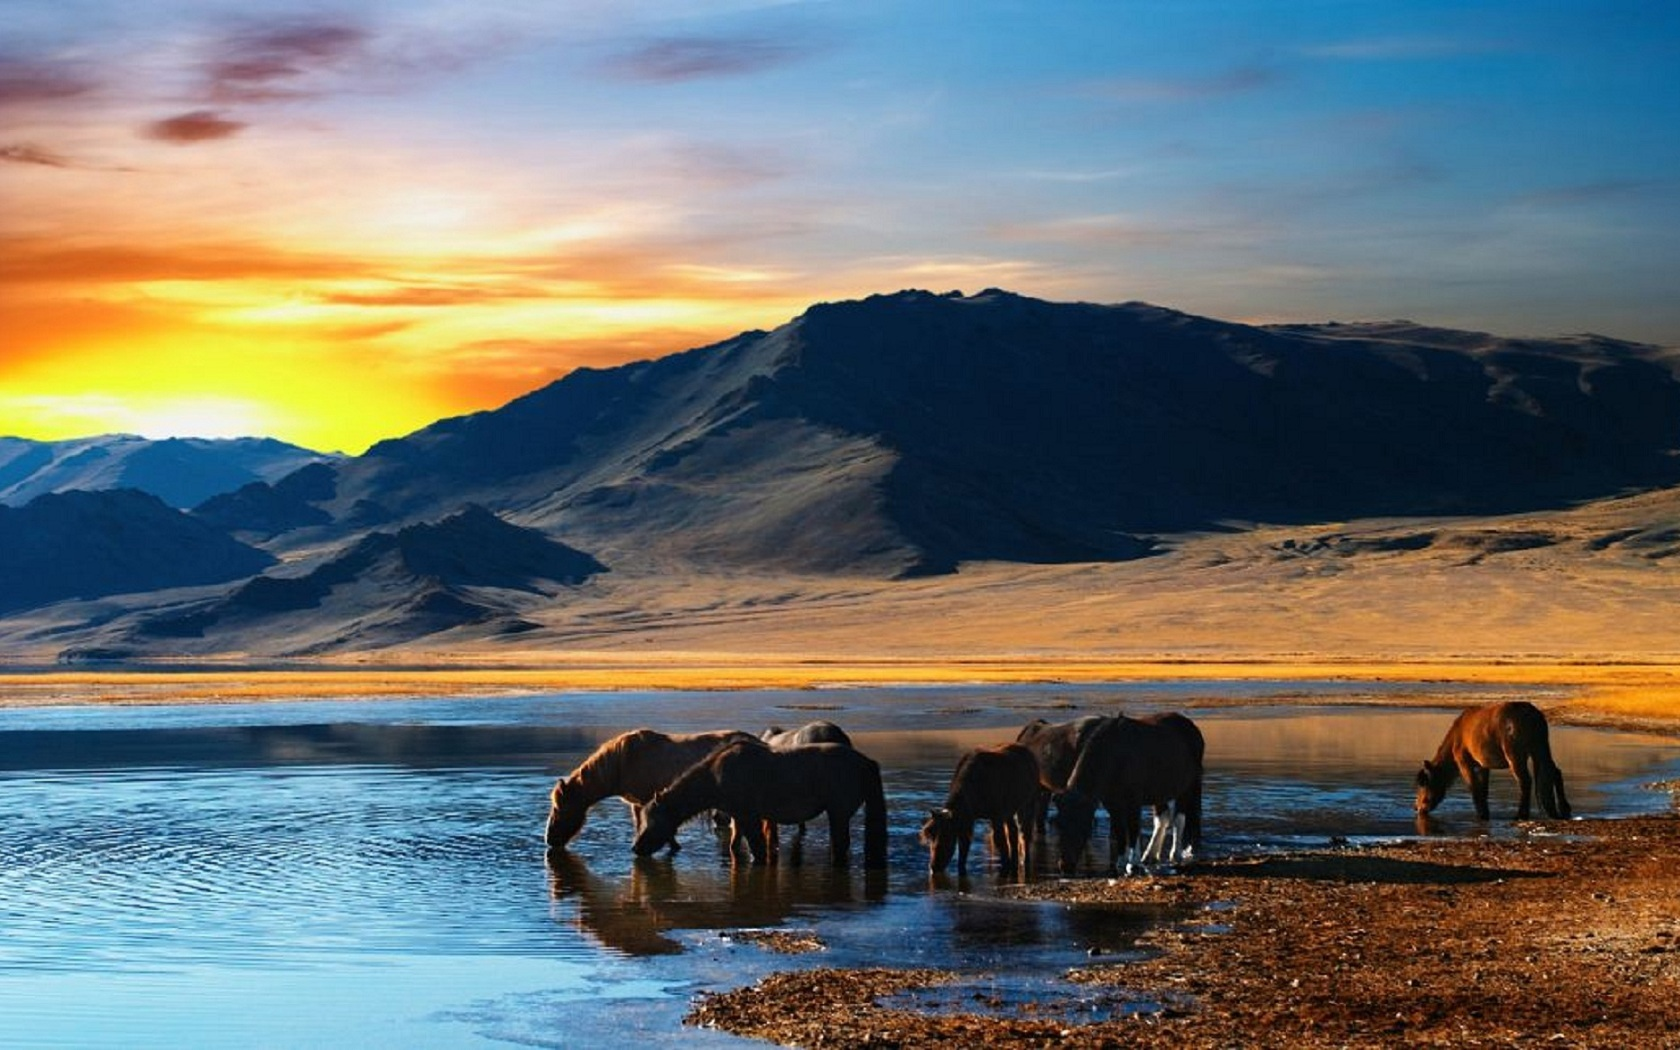 44640 download wallpaper Animals, Landscape, Nature, Mountains, Horses screensavers and pictures for free